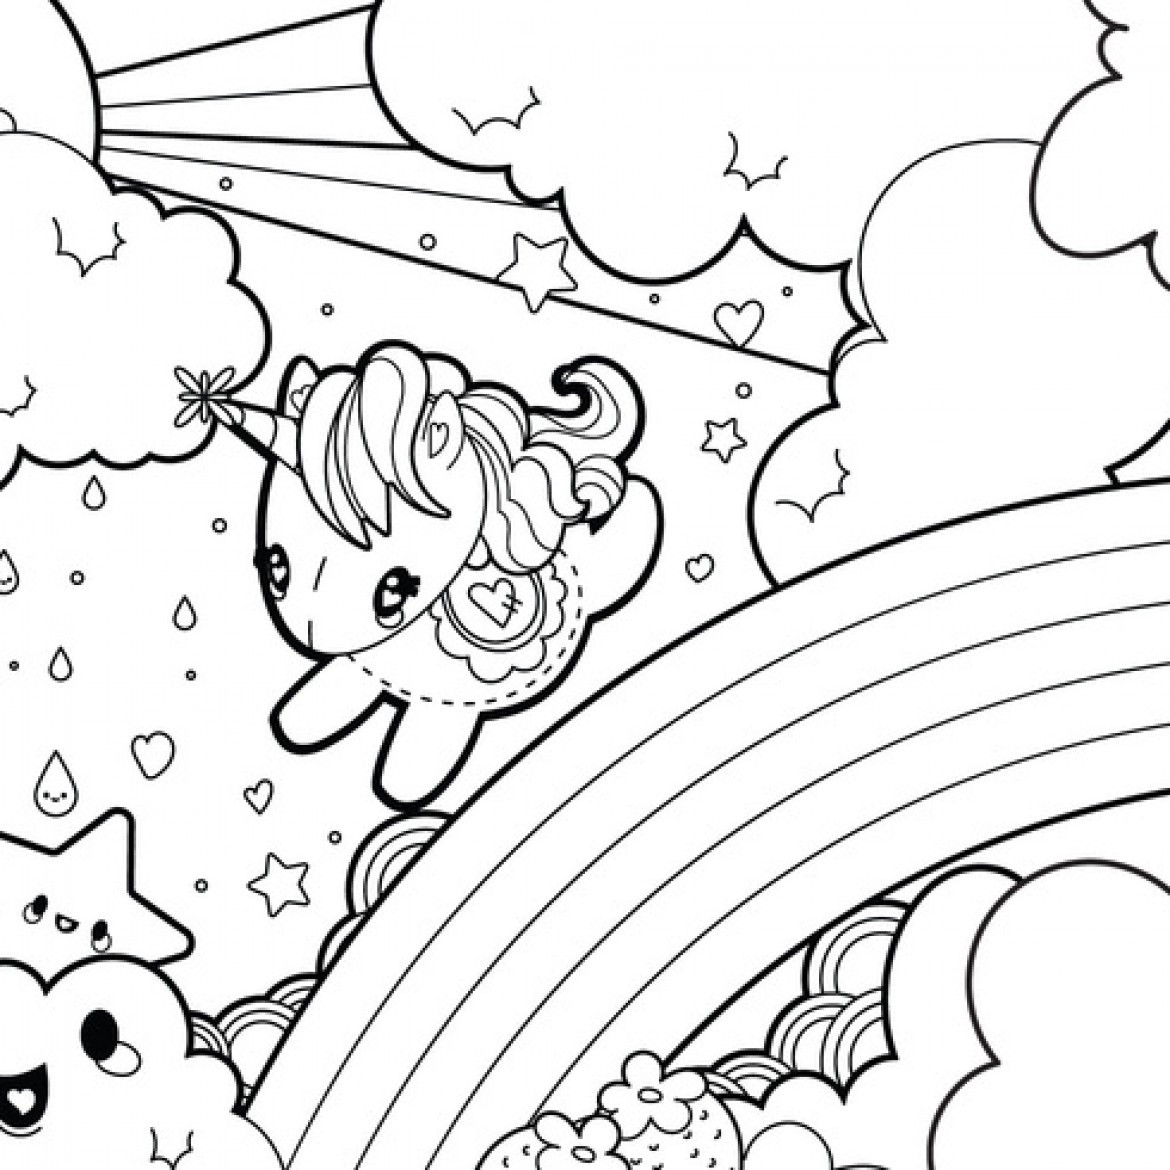 Rainbow Coloring Pages For Adults  37 Best and Free Printable Unicorn Coloring Pages